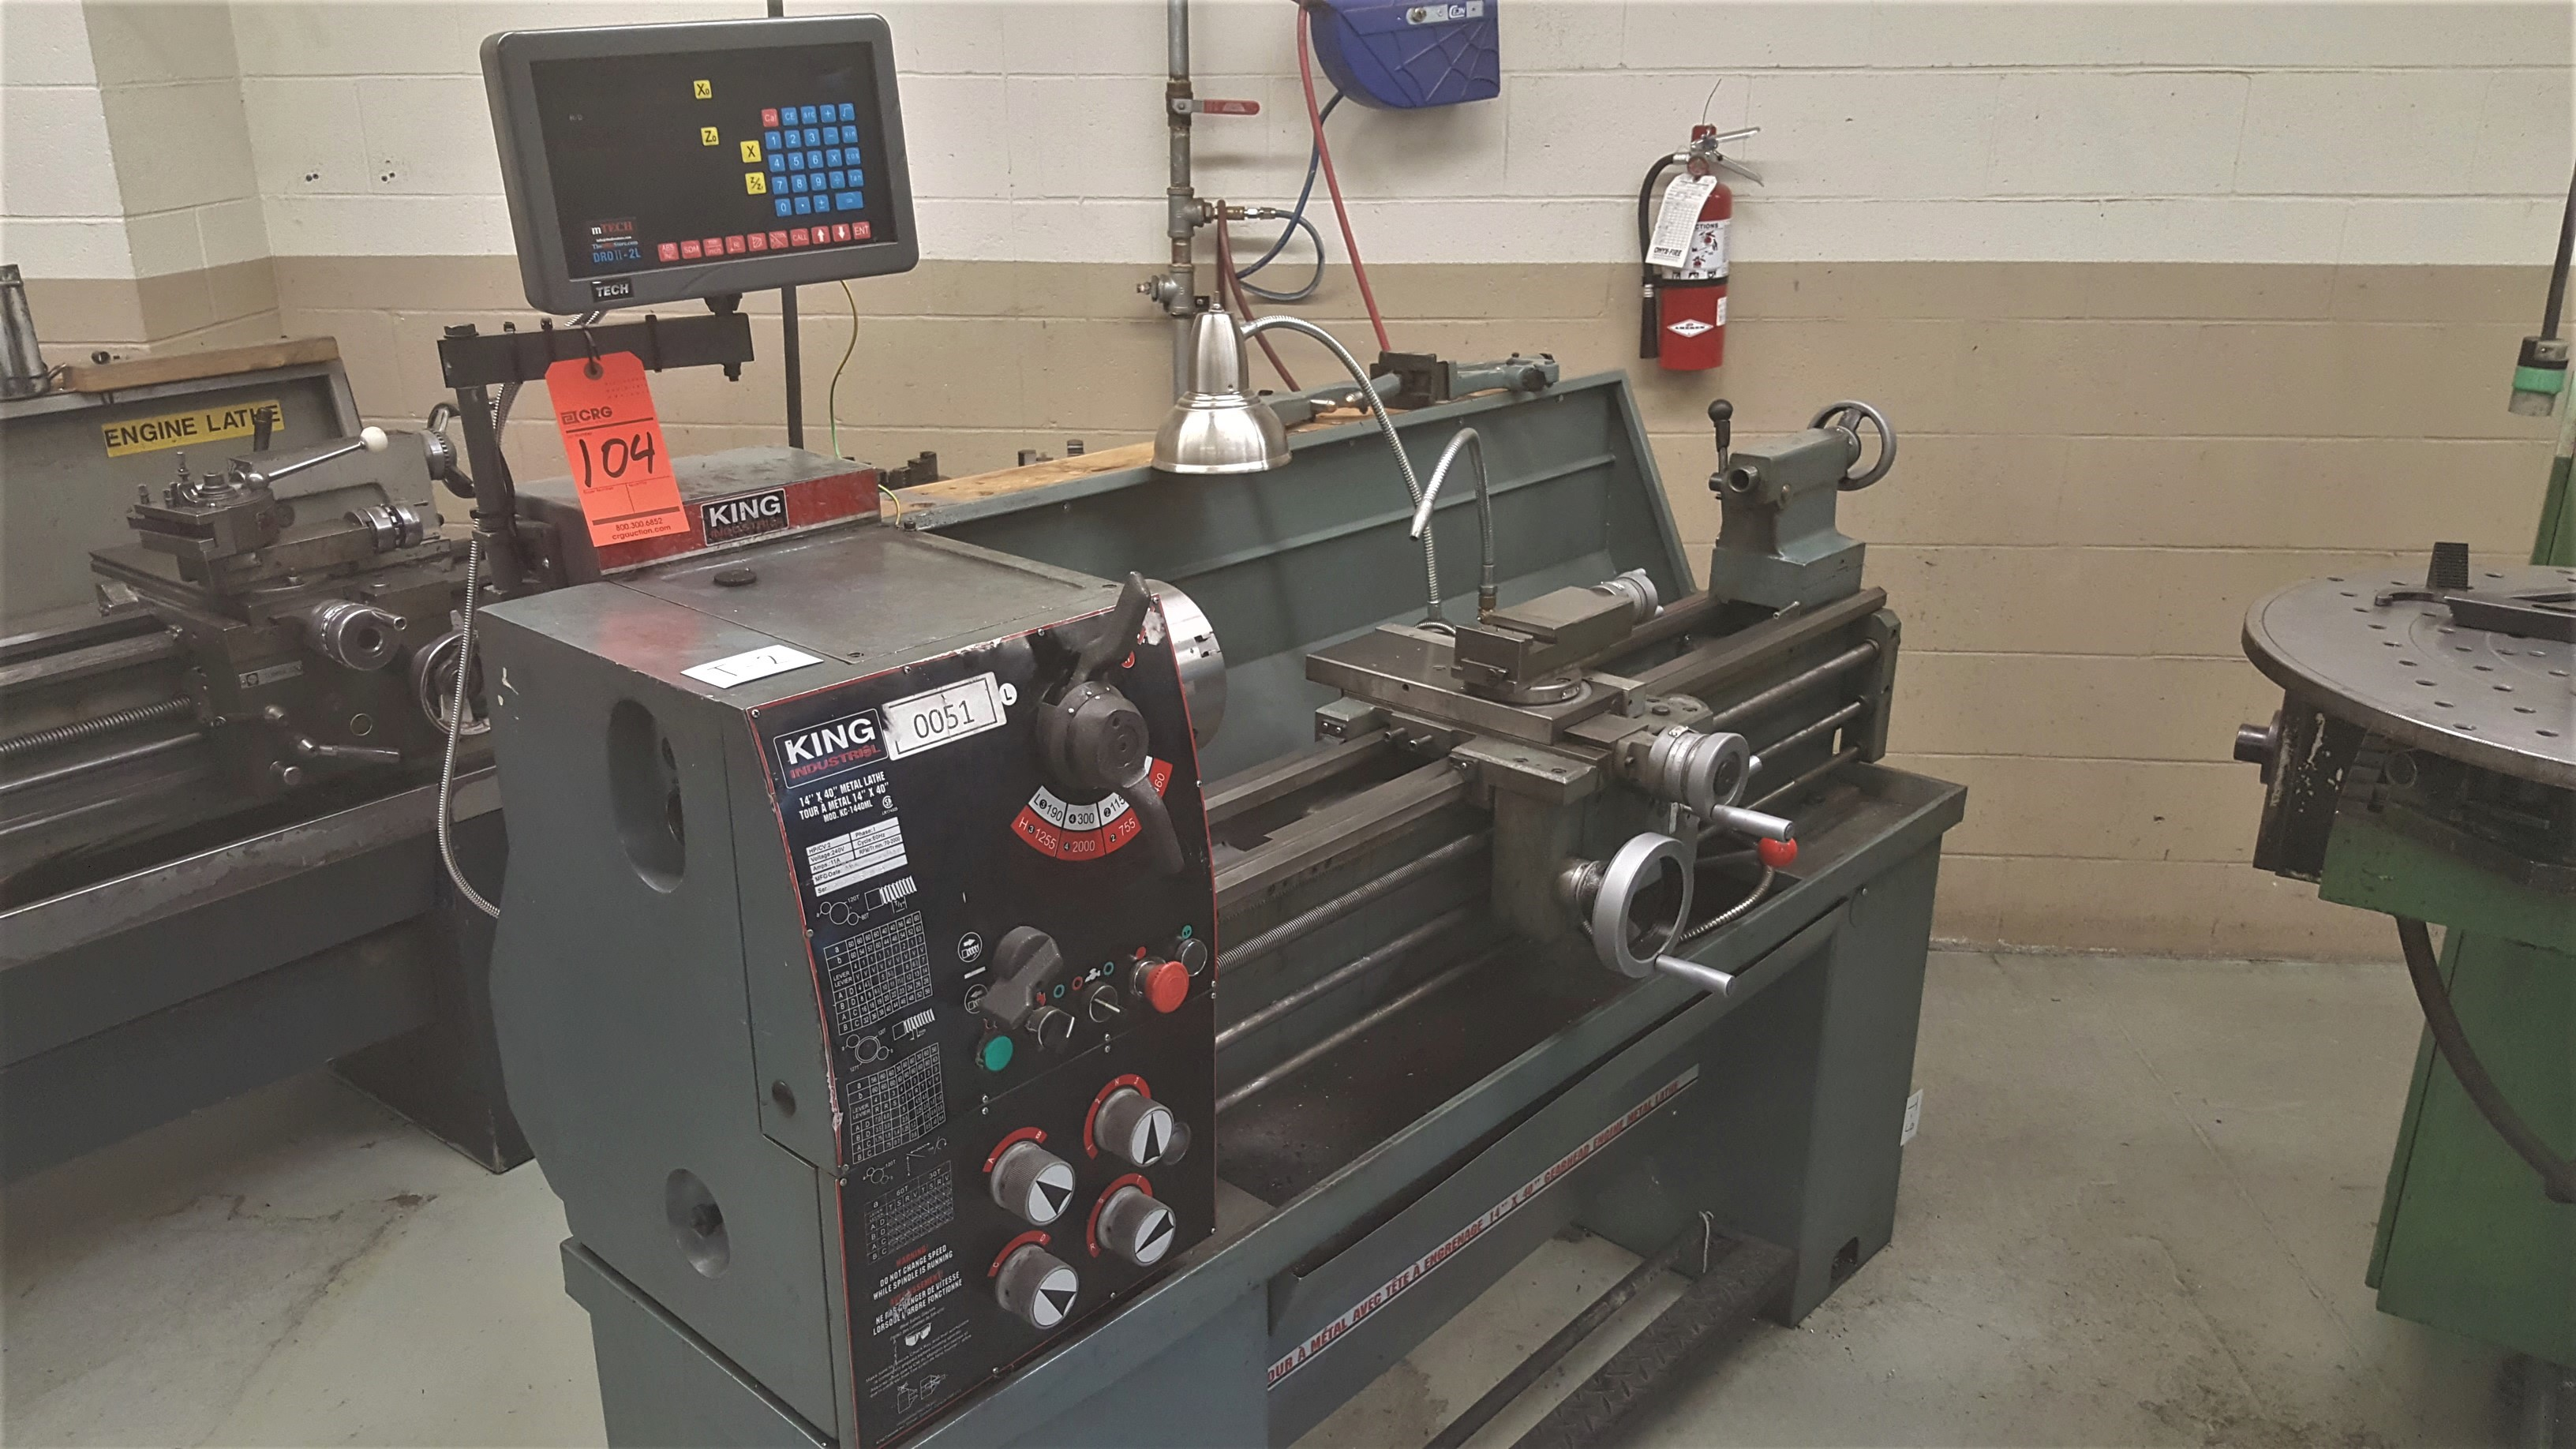 """Lot 104 - 2010 KING 1440 engine lathe, 14"""" swing X 40"""" between centers, 70 - 2,00 RPM spindle speeds, inch/"""